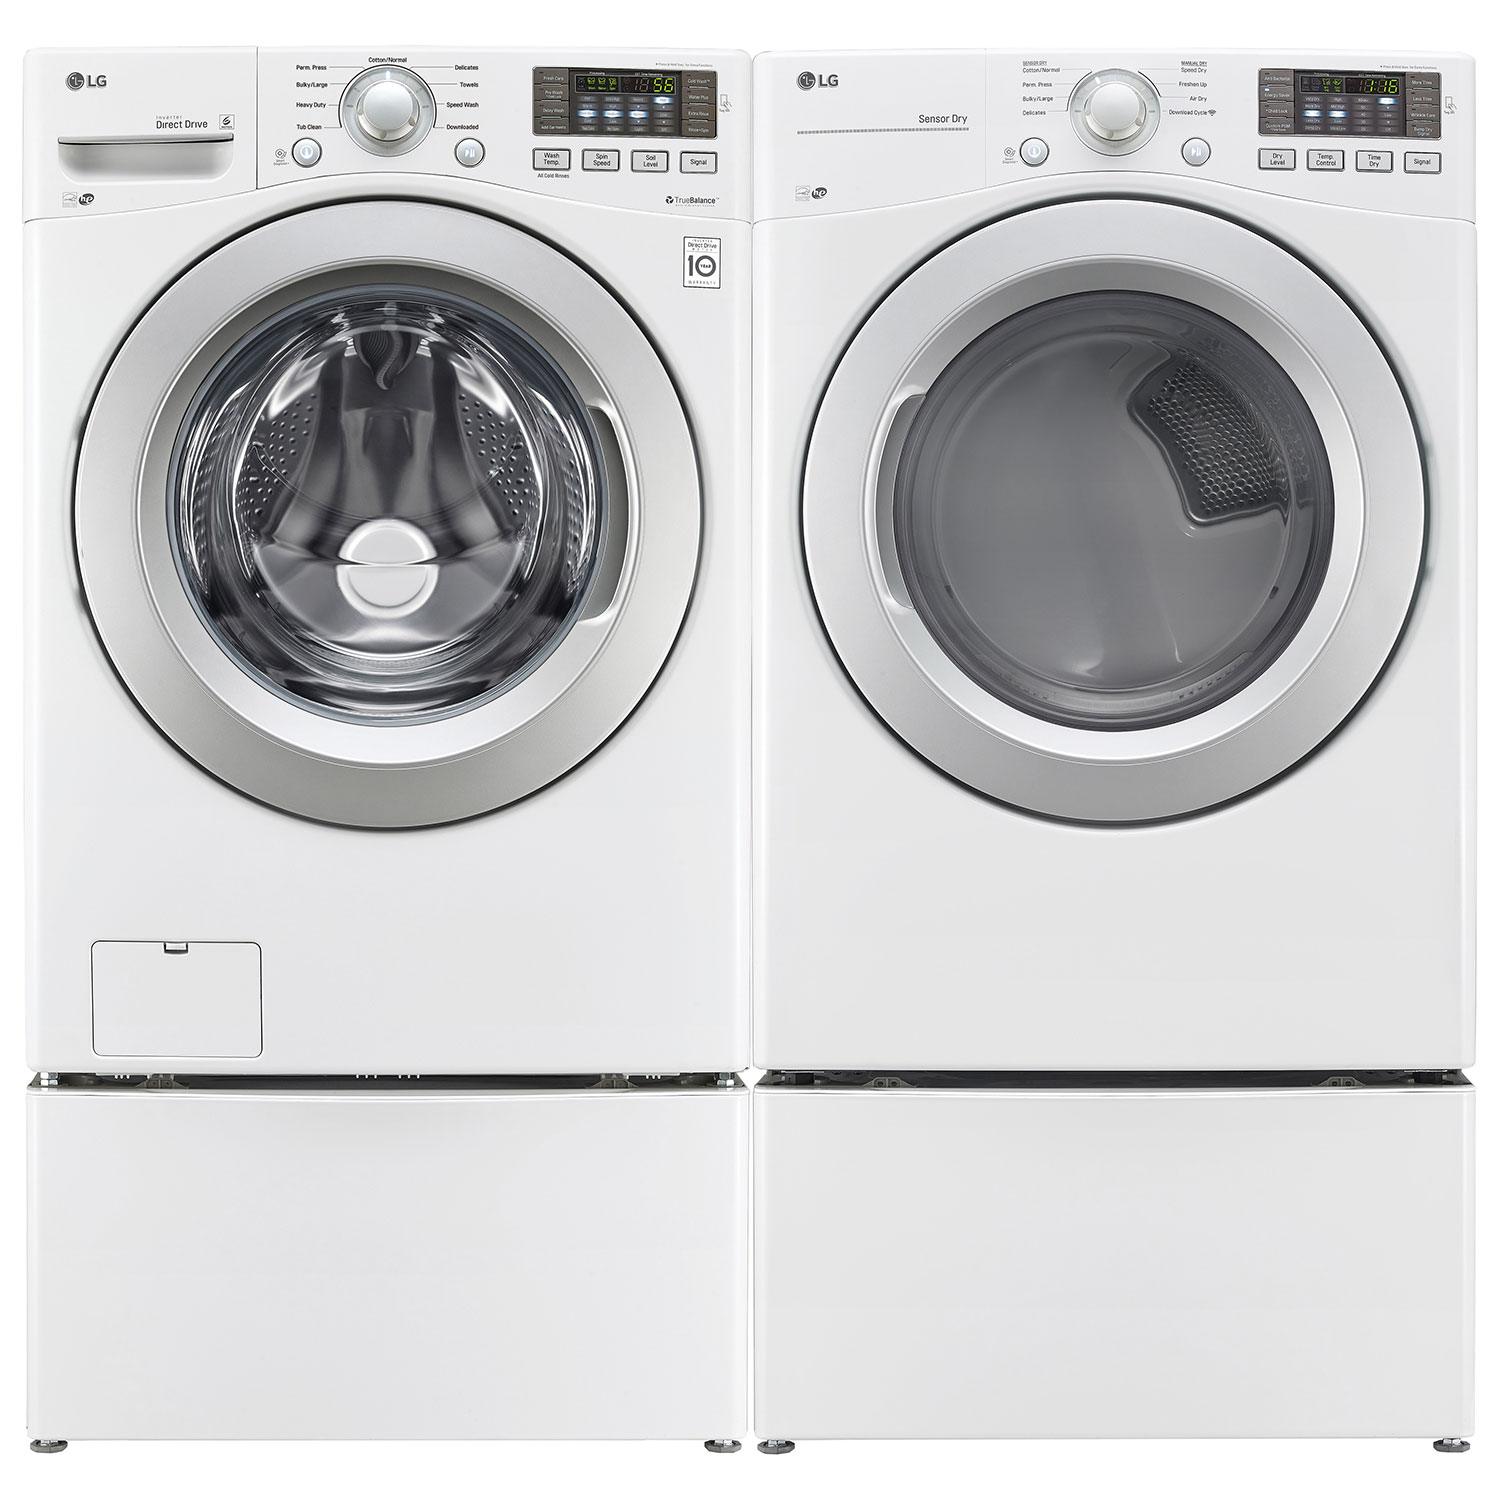 lg 52 cu ft high efficiency front load washer wm3270cw white washers best buy canada